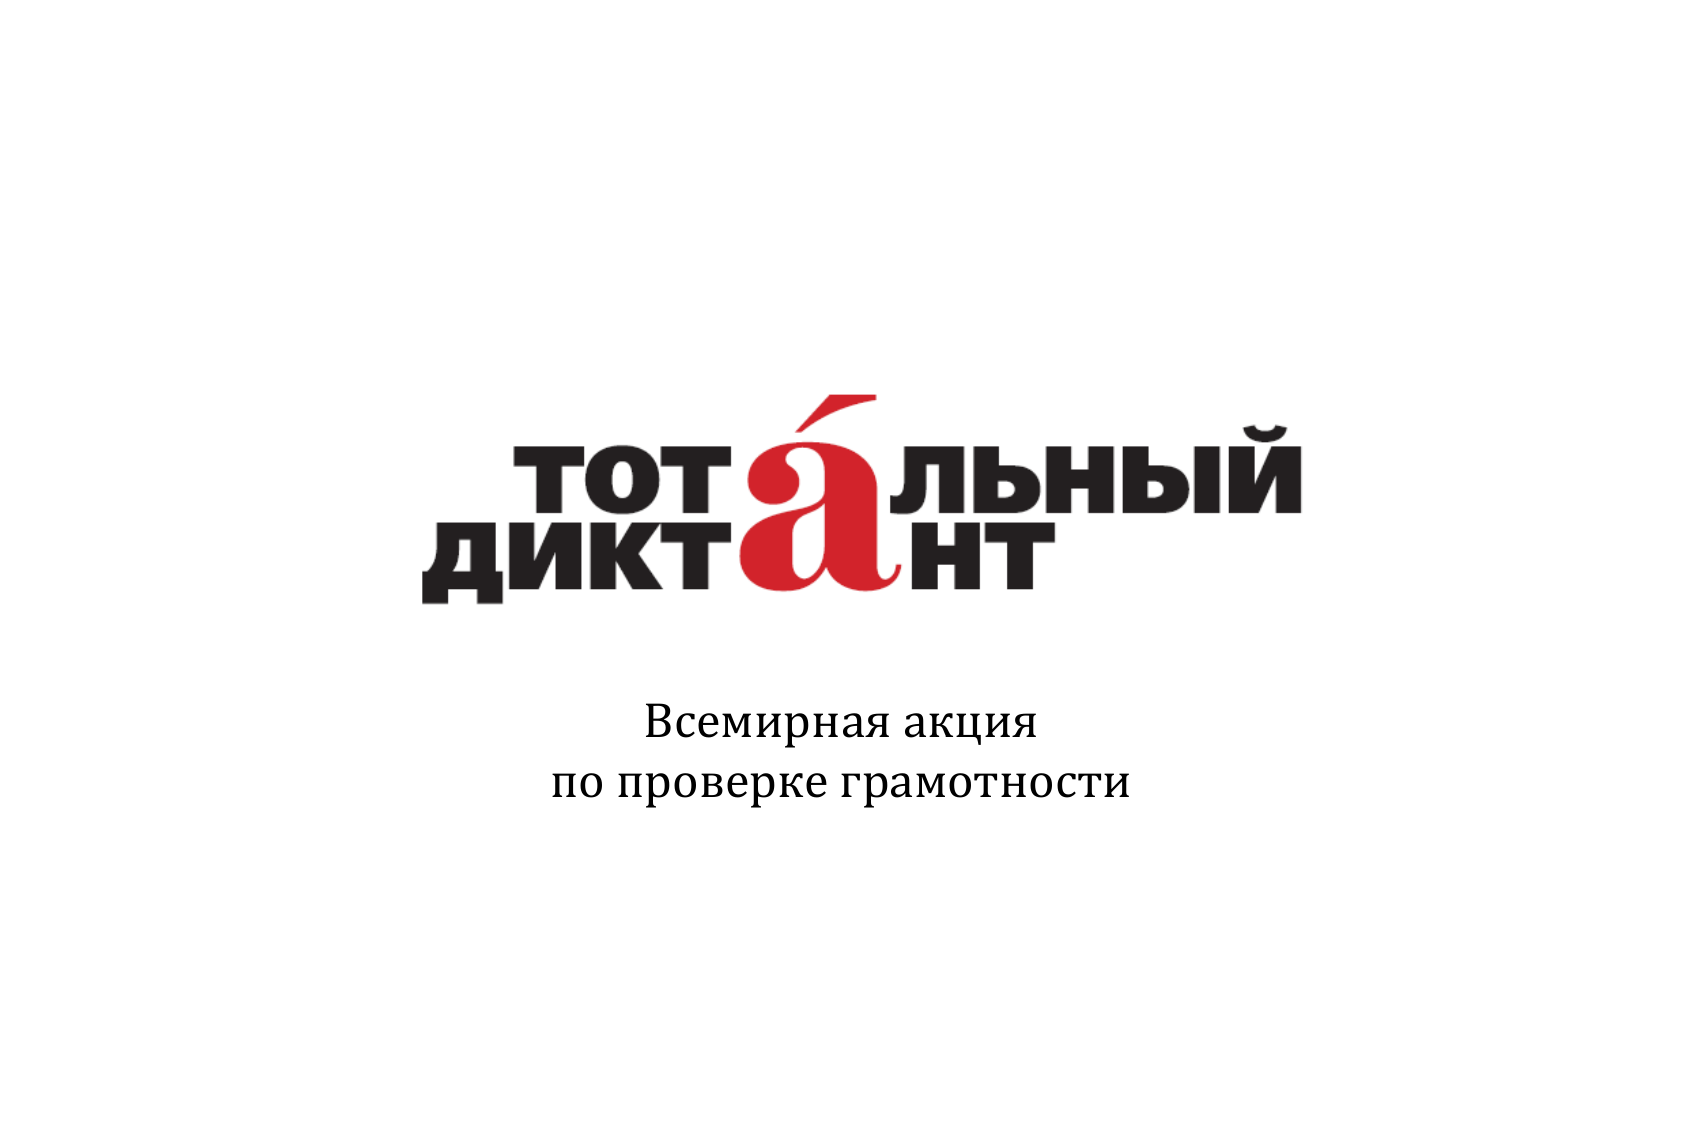 http://s2.docme.ru/store/data/000273637_1-1b419c5f0c4e812dcdb8e6f58dac6468.png